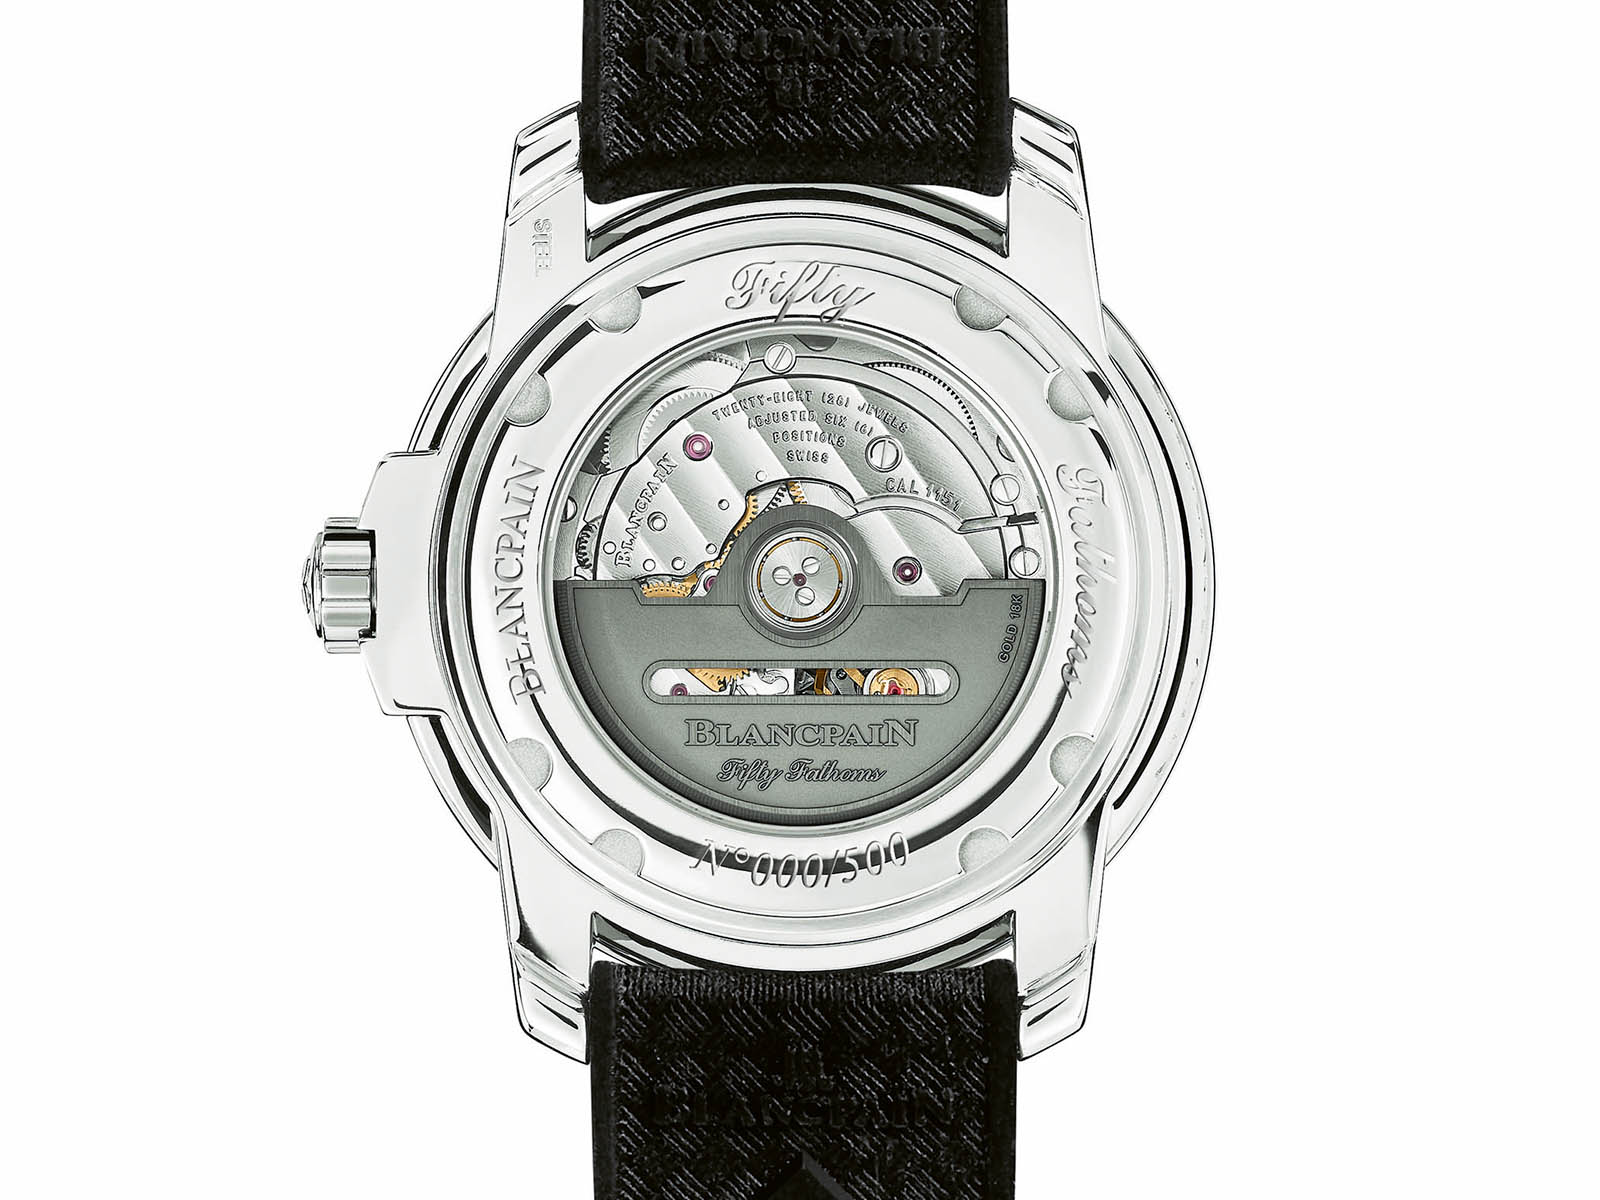 blancpain-fifty-fathoms-barakuda-limited-edition-3.jpg